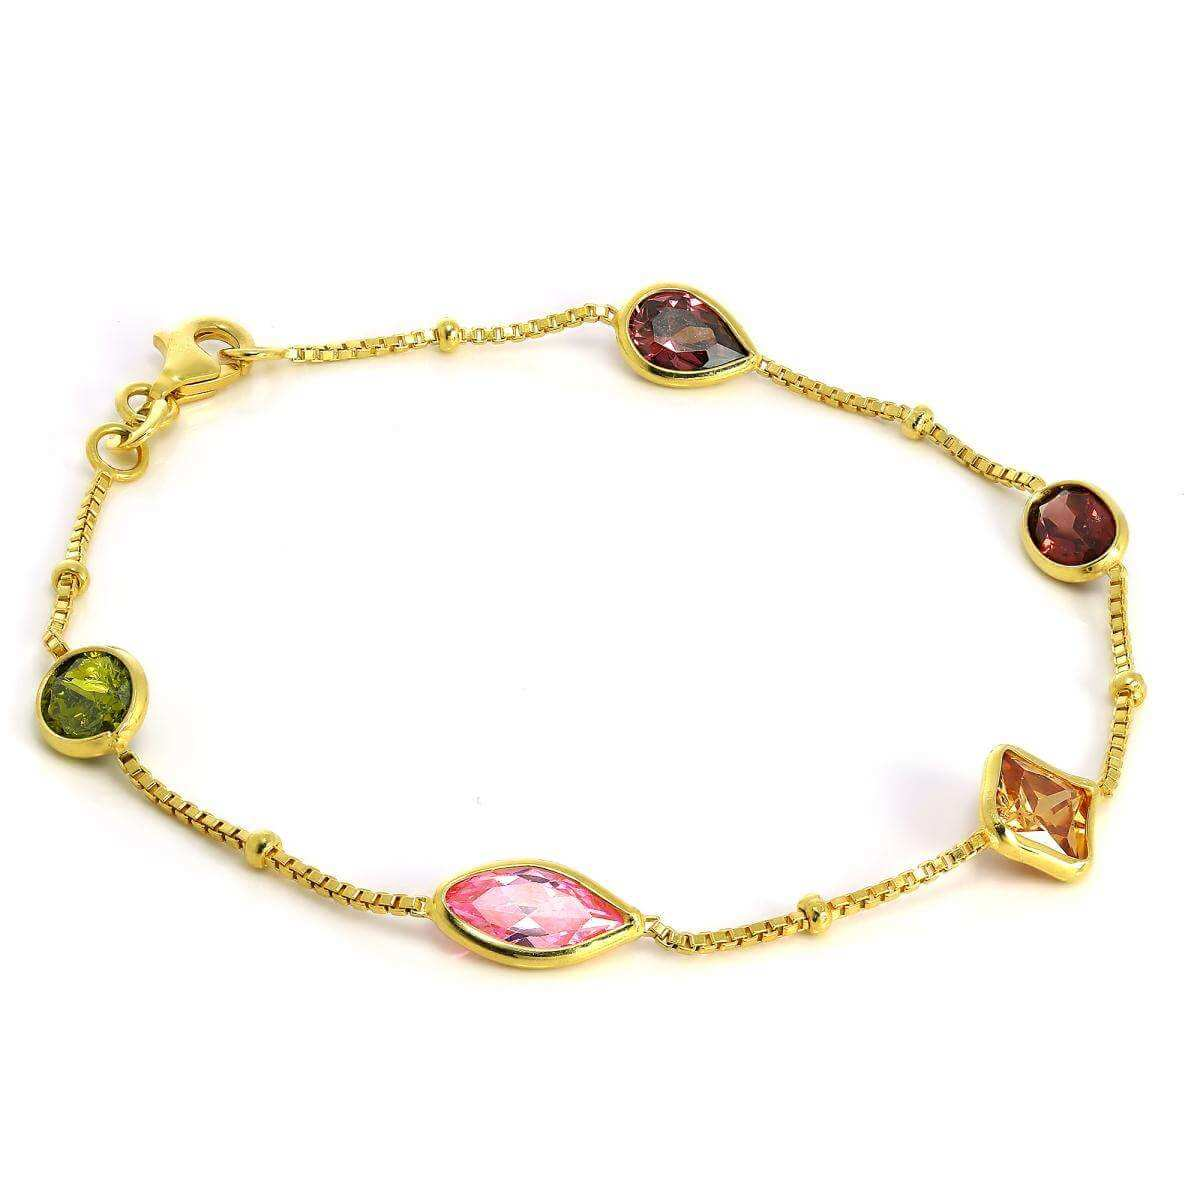 Gold Plated Sterling Silver Box Chain Bracelet with CZ Crystals